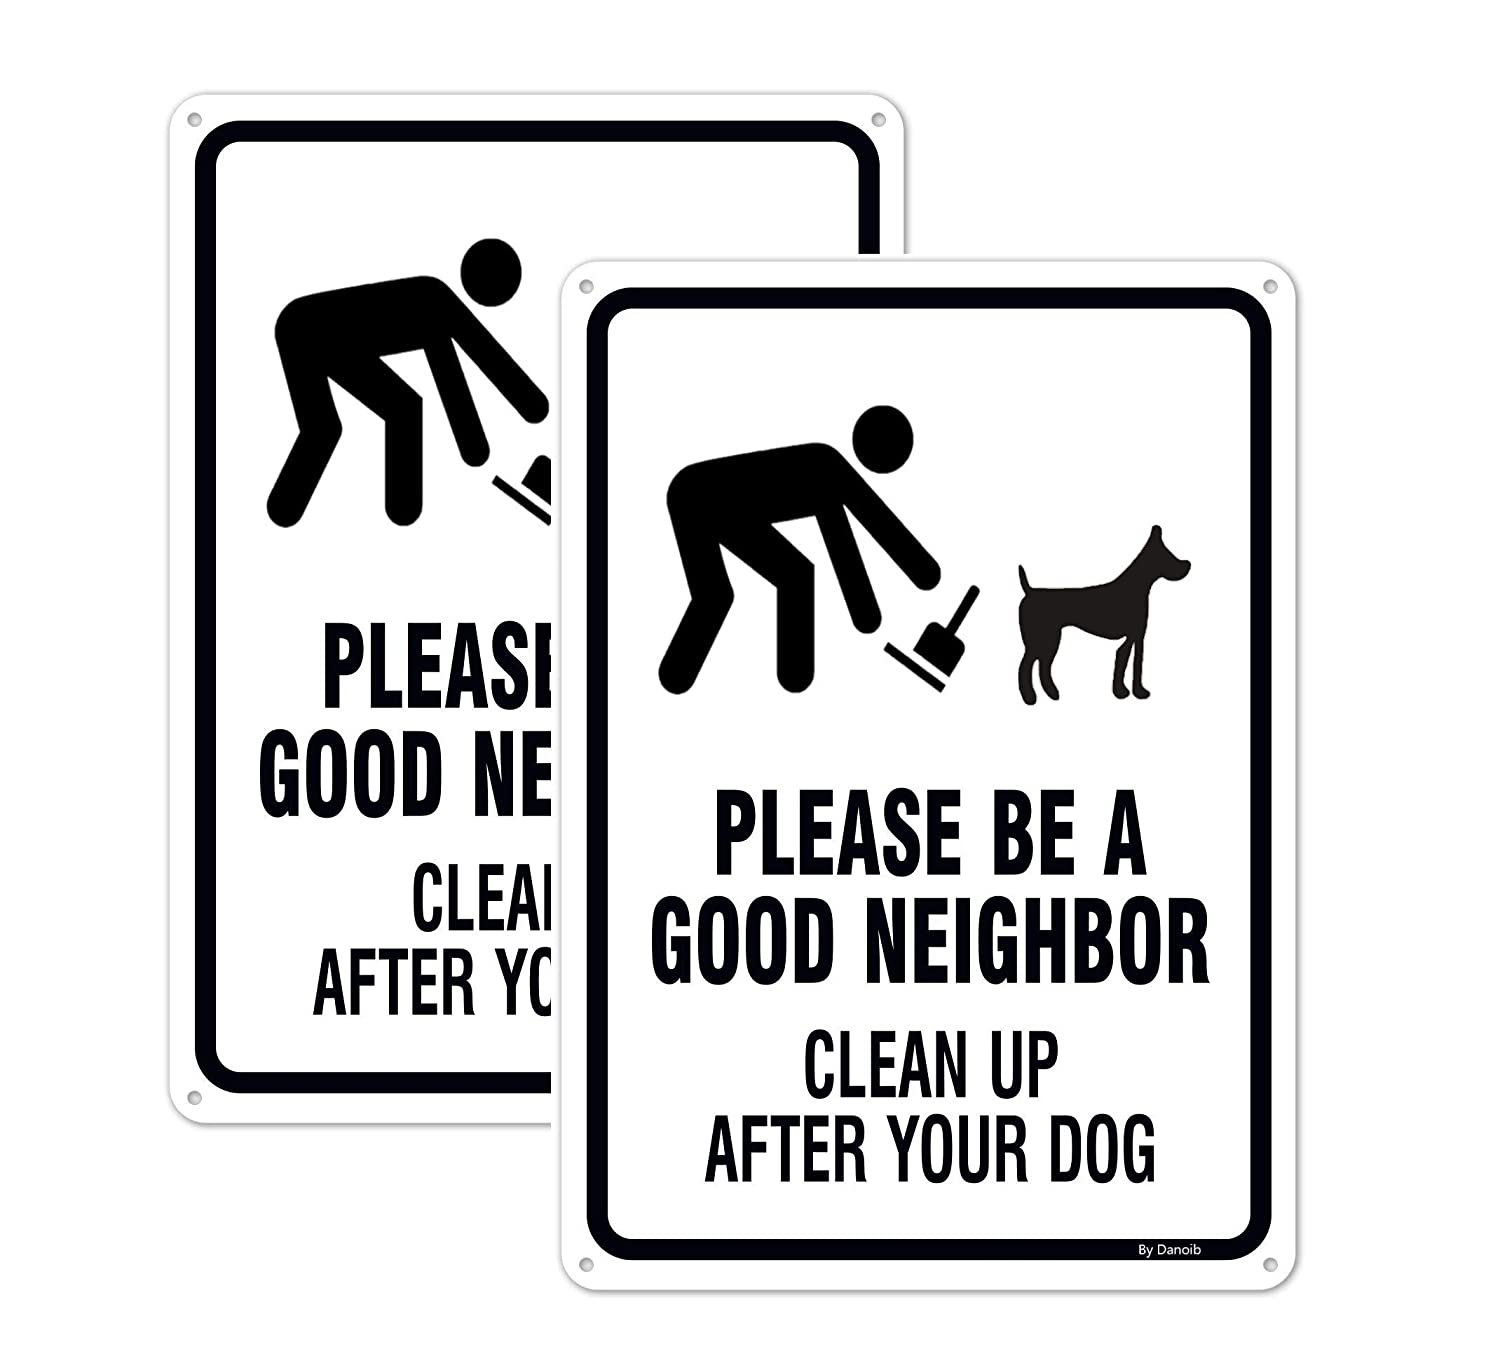 2-Pack Please Be a Good Neighbor - Clean Up After Your Dog Signs 14